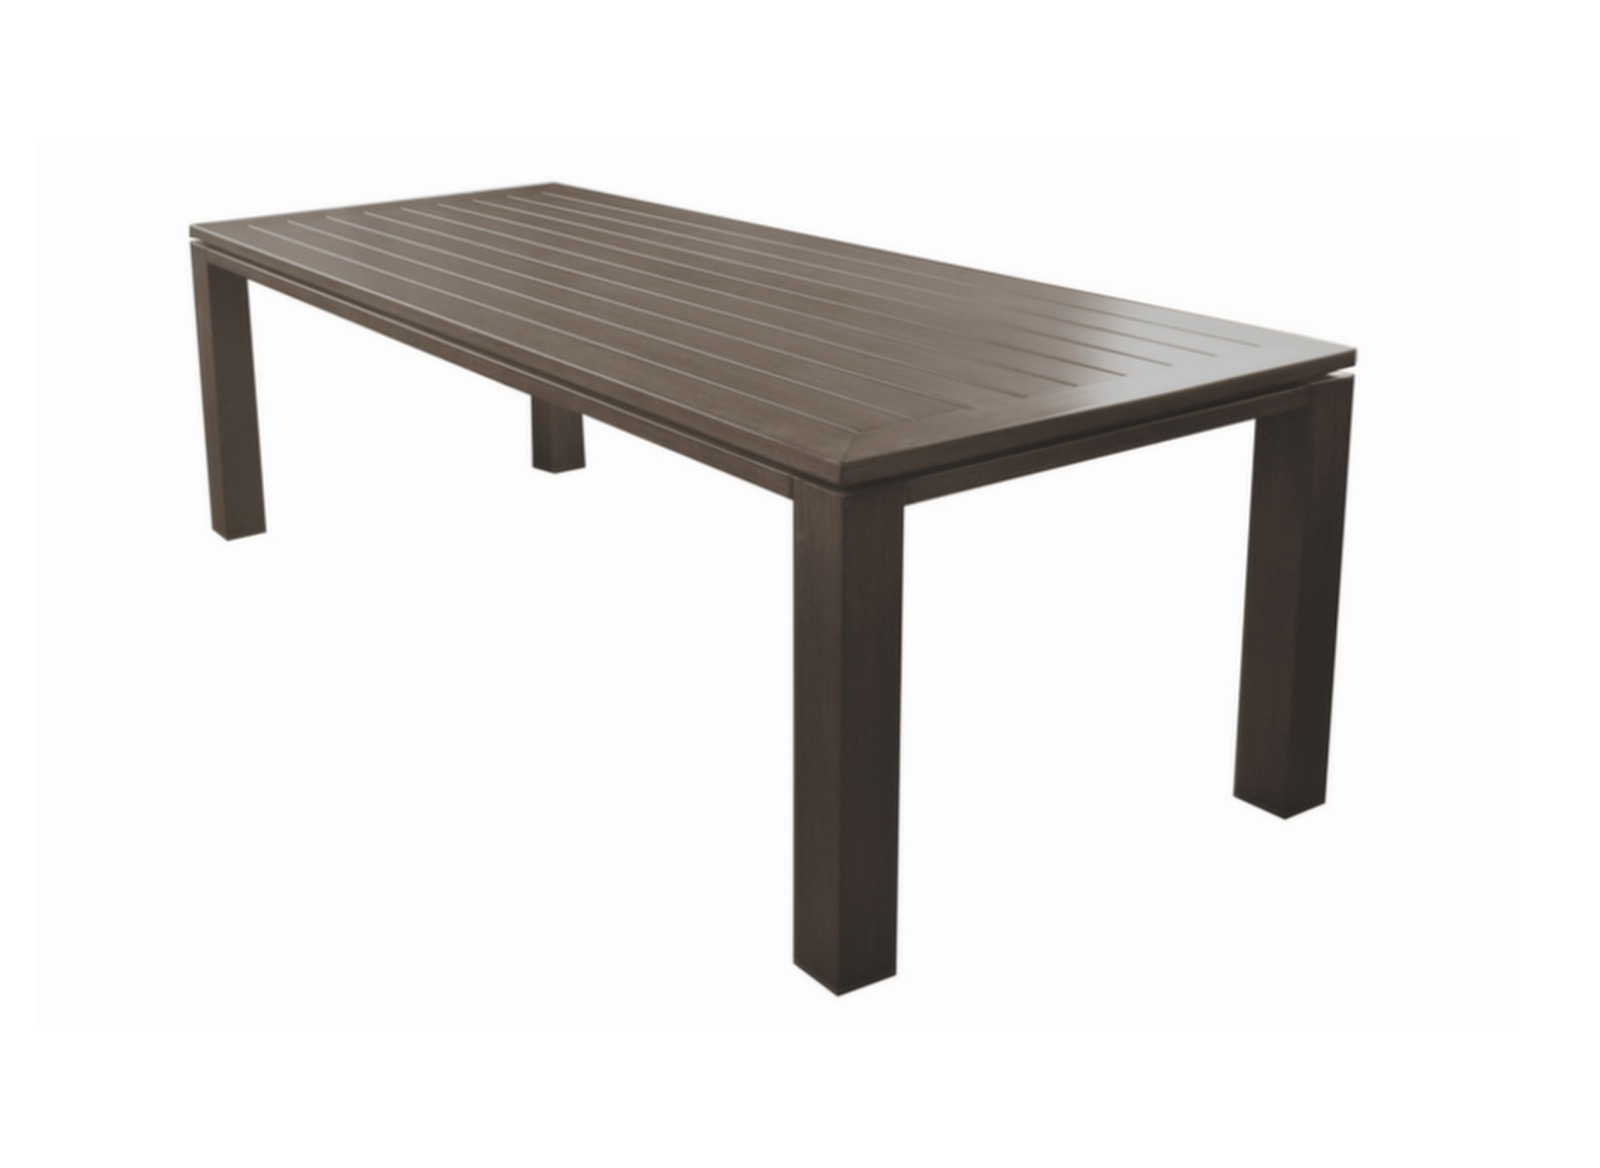 table latino 240 cm tables fixes mobilier de jardin en